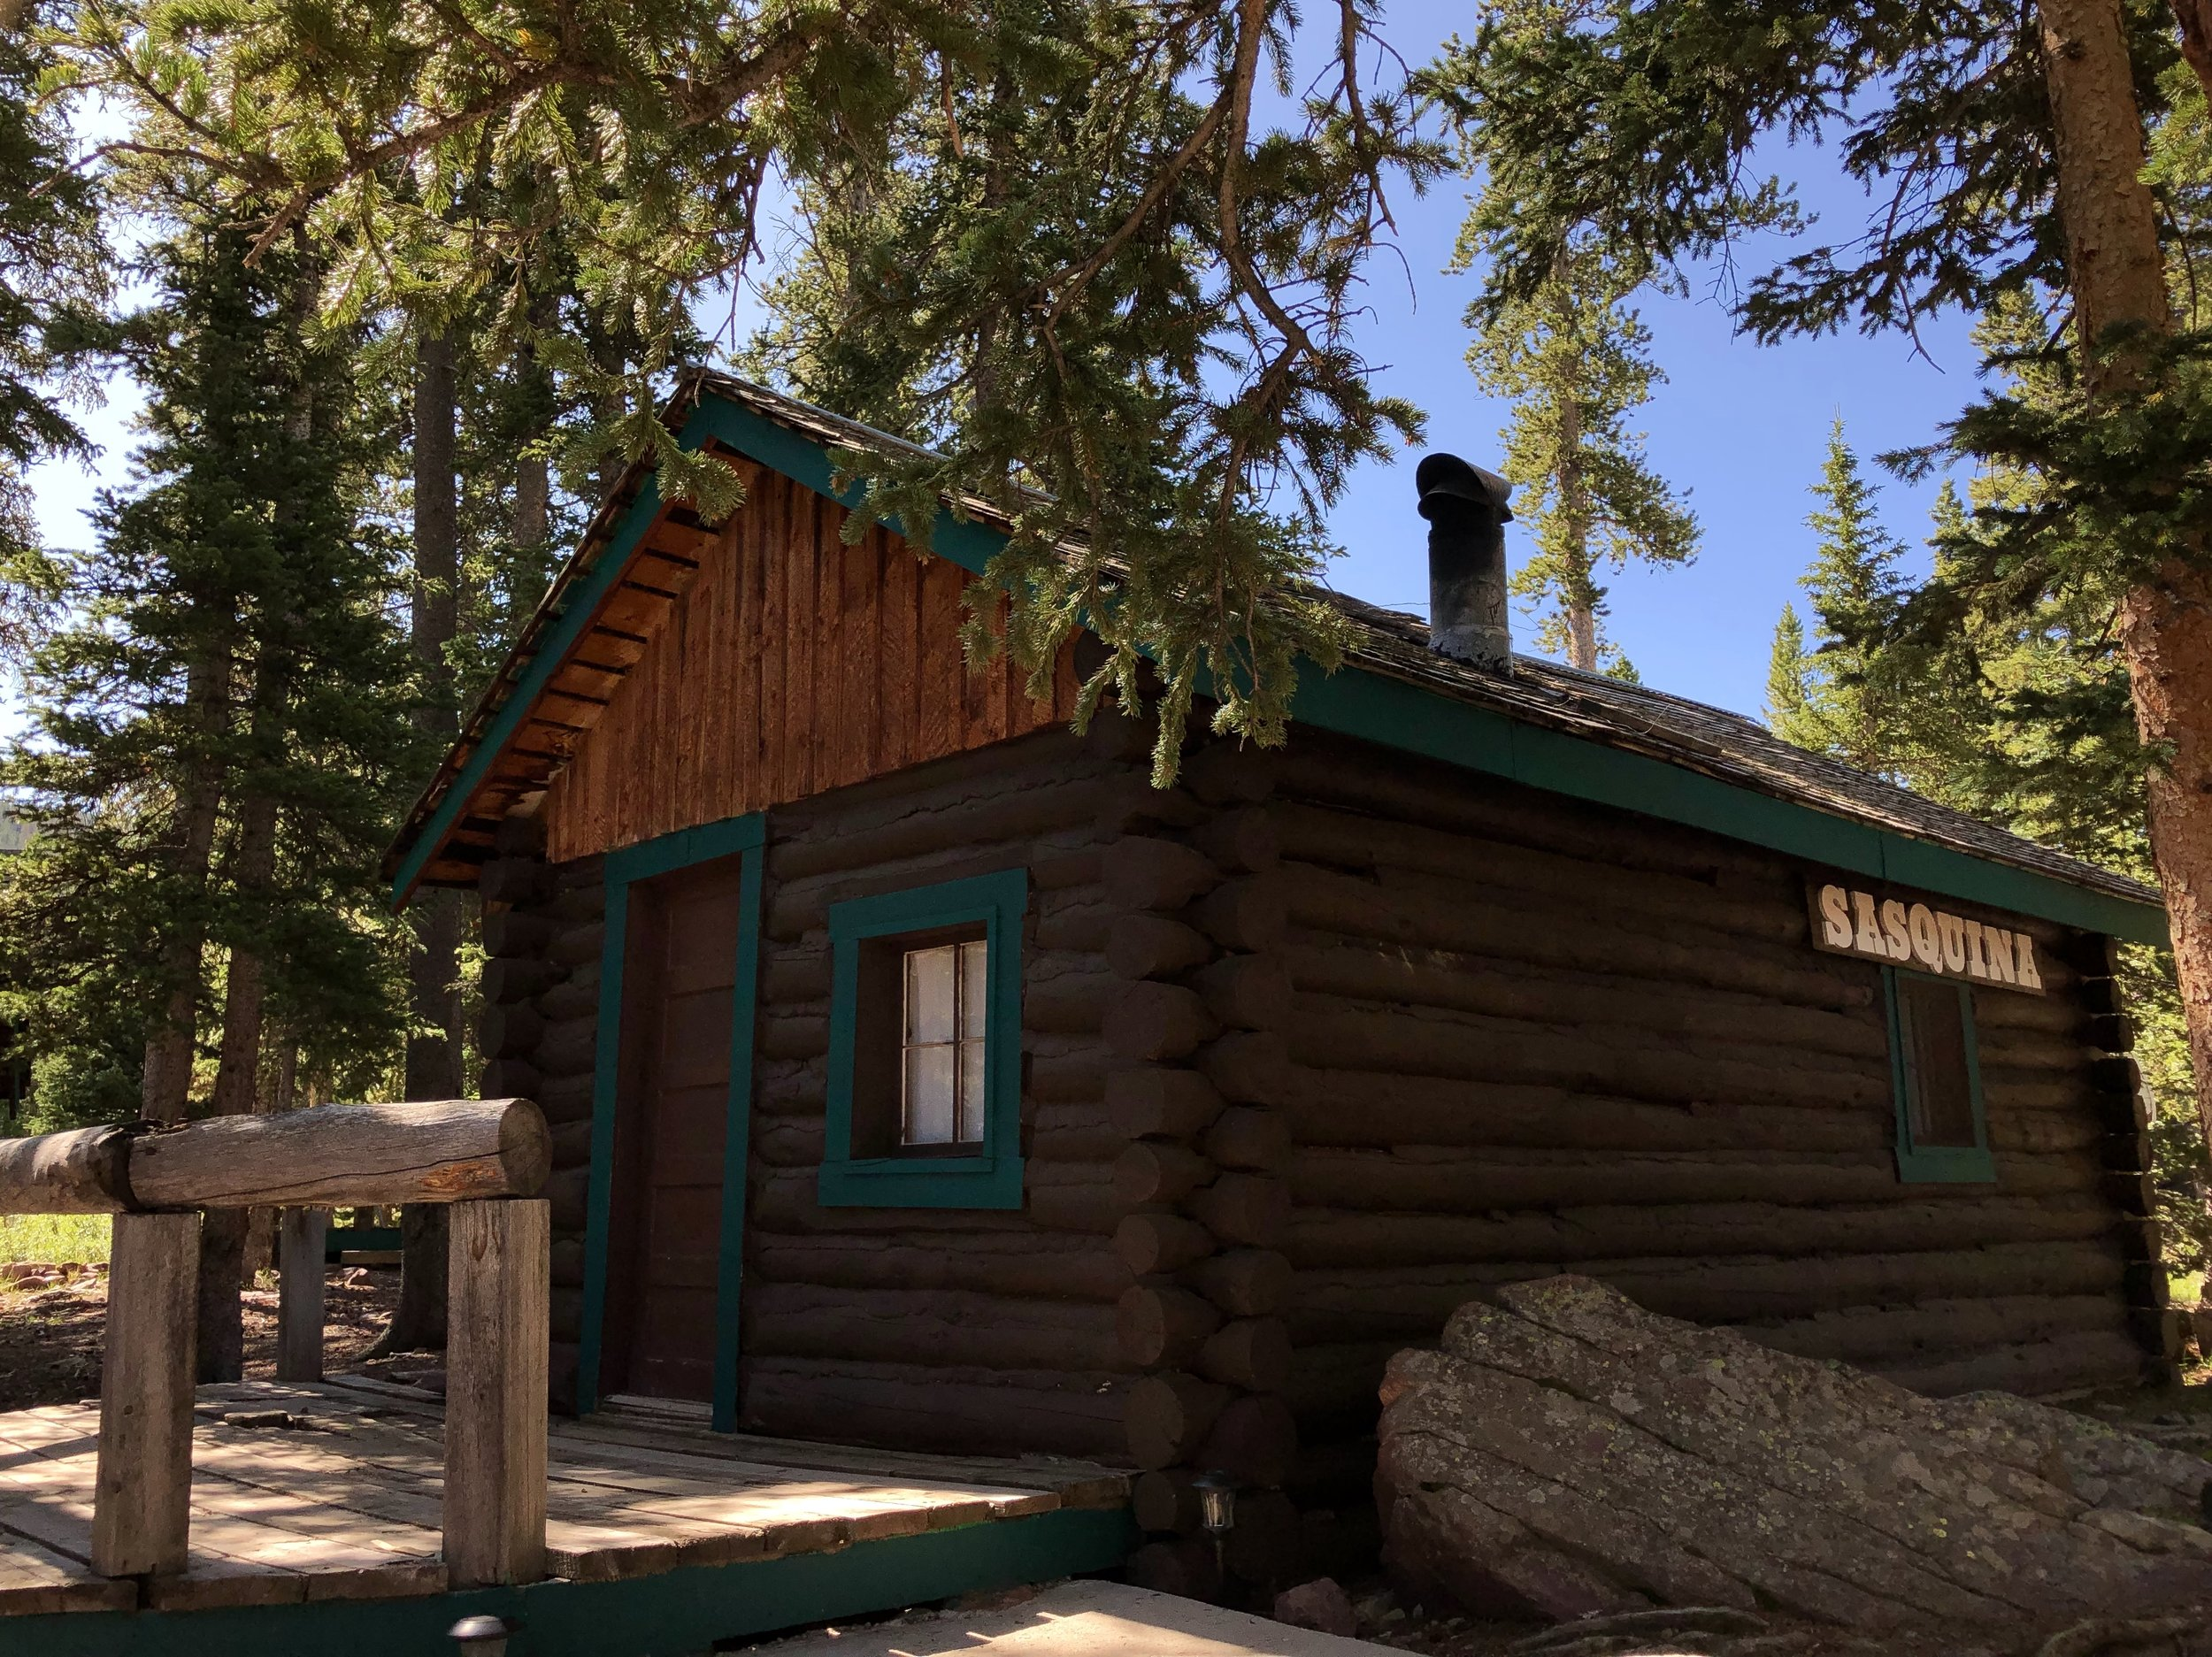 Sasquina - Sleeps 4 - 228 sq/ft Two Bedroom CabinSingle Queen Bed In Each RoomRooms Are Separated By Wall With OPEN Door WayThese Rooms Are NOT Completely Private From Each OtherPricingSunday - Thursday | $85/NightFriday & Saturday |$100/Night